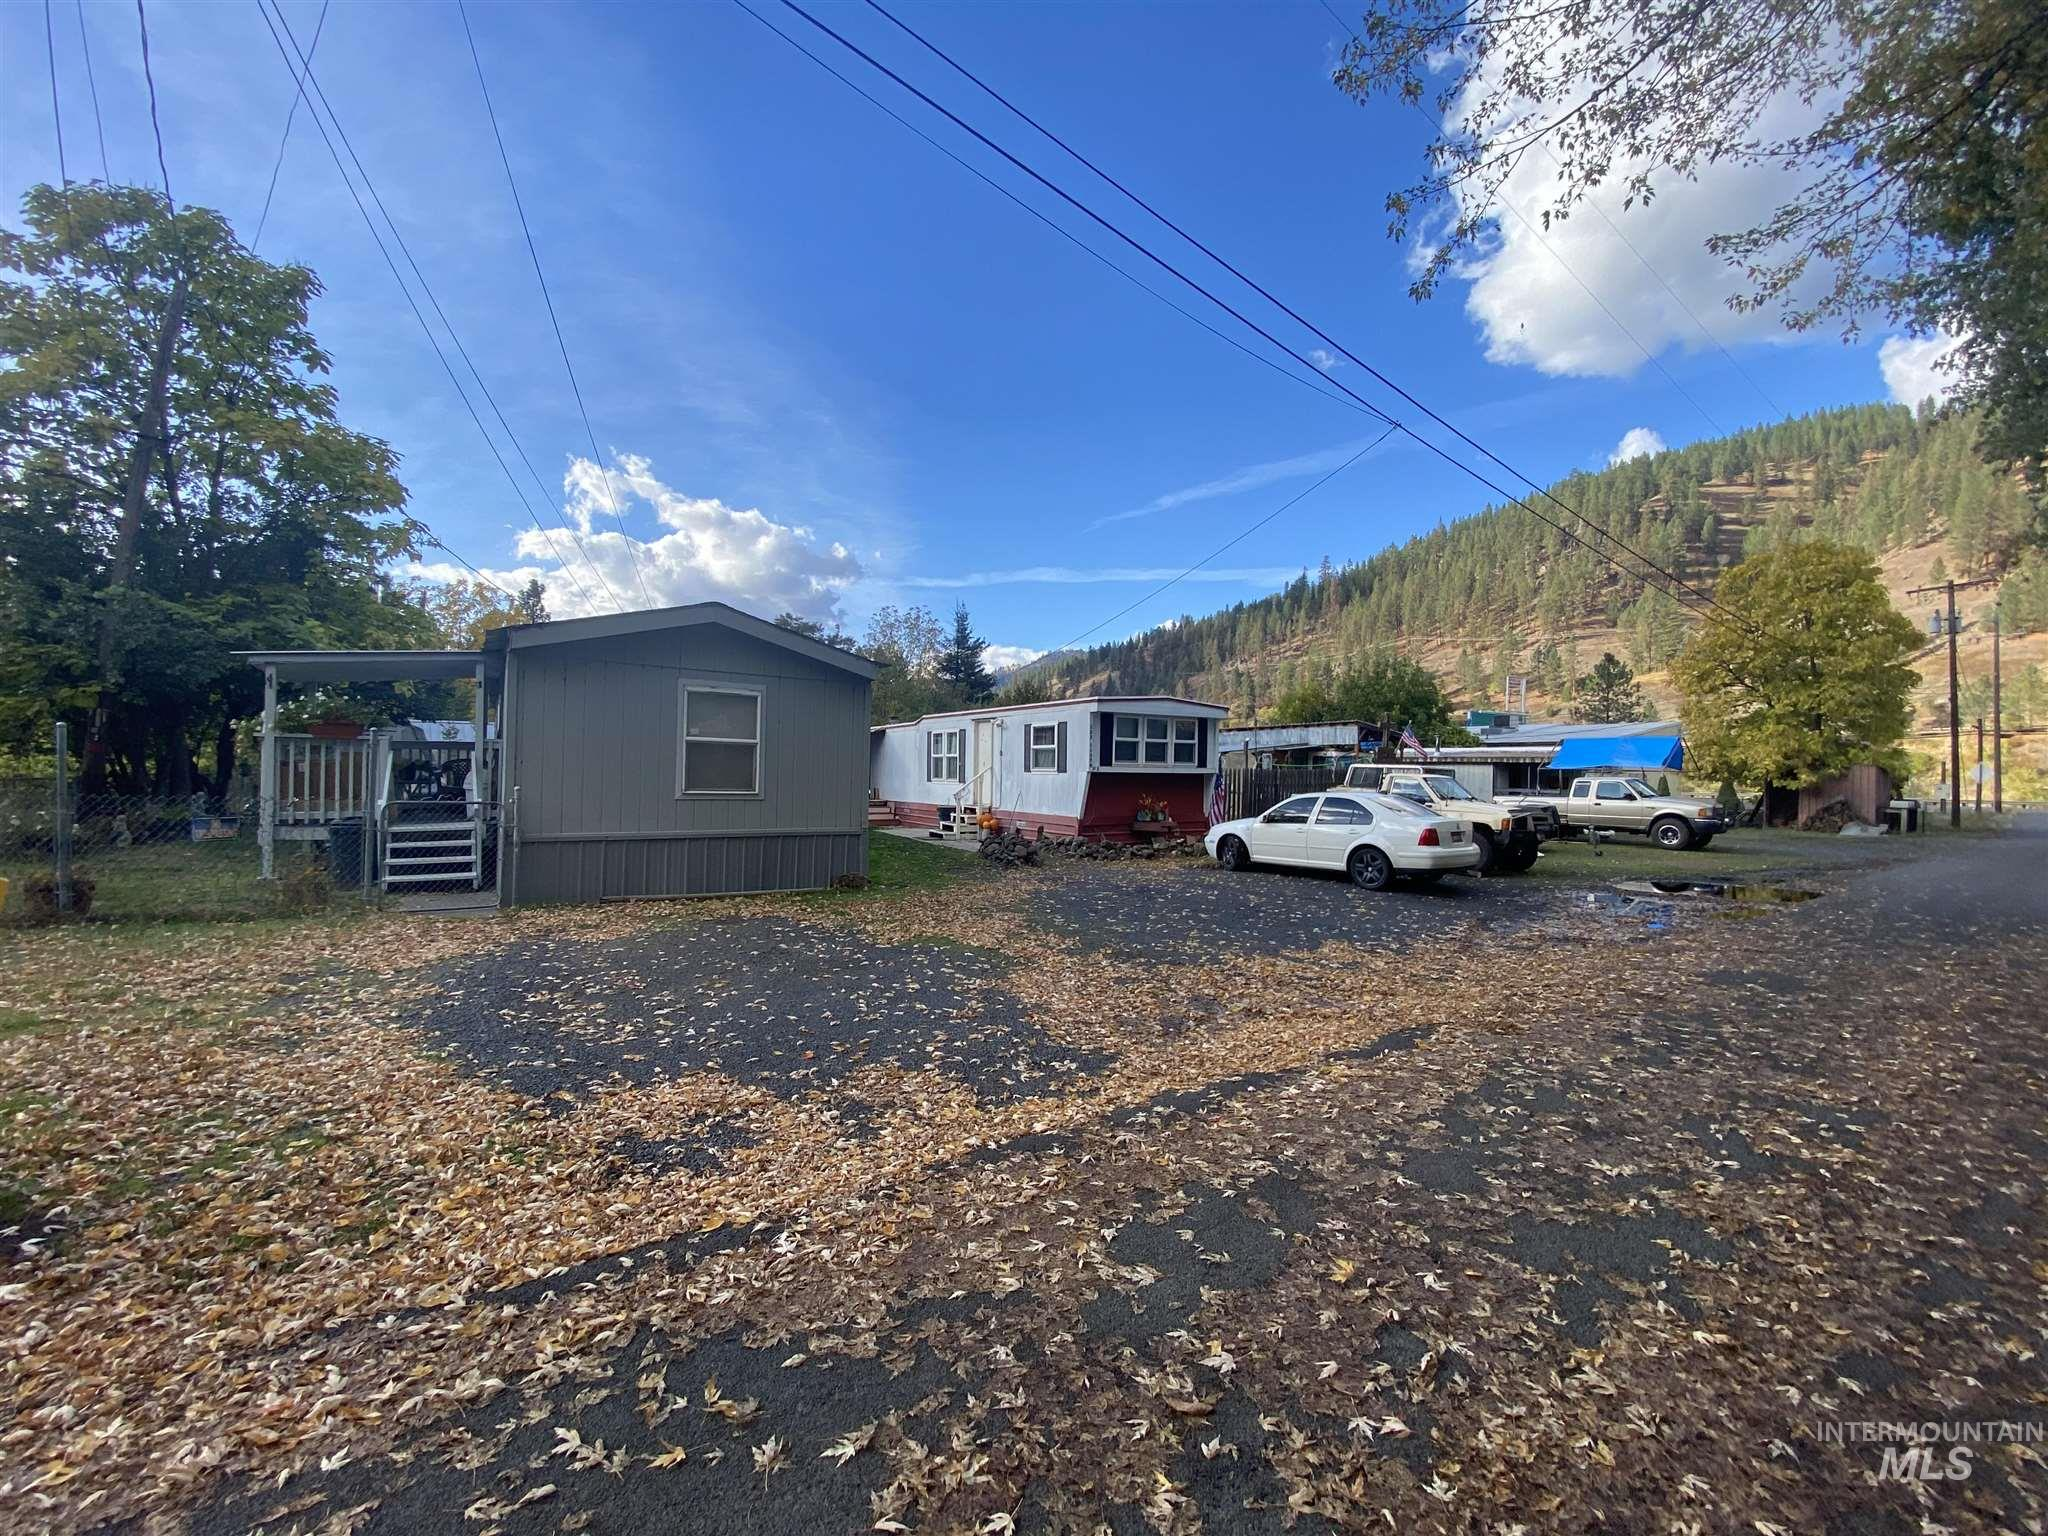 137 113th Street, Orofino, Idaho 83544, 2 Bedrooms, 1 Bathroom, Residential For Sale, Price $110,000, 98784414